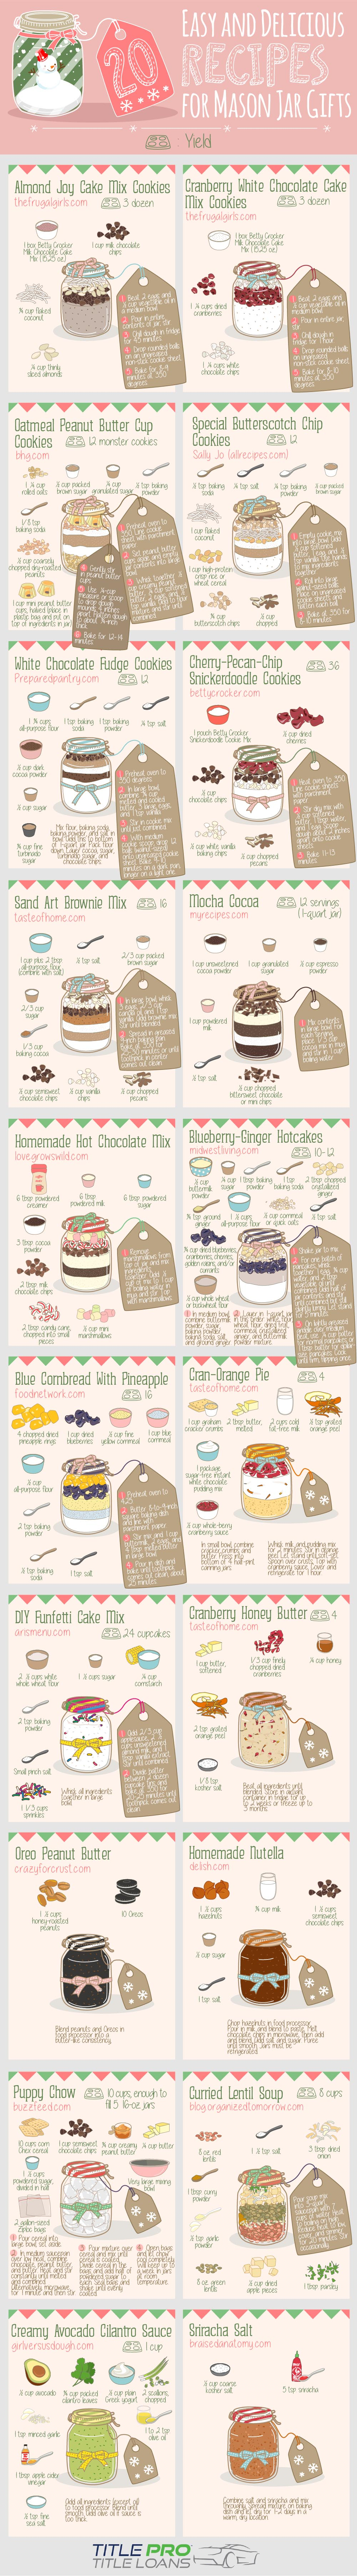 Gifts in a Mason Jar - from the heart